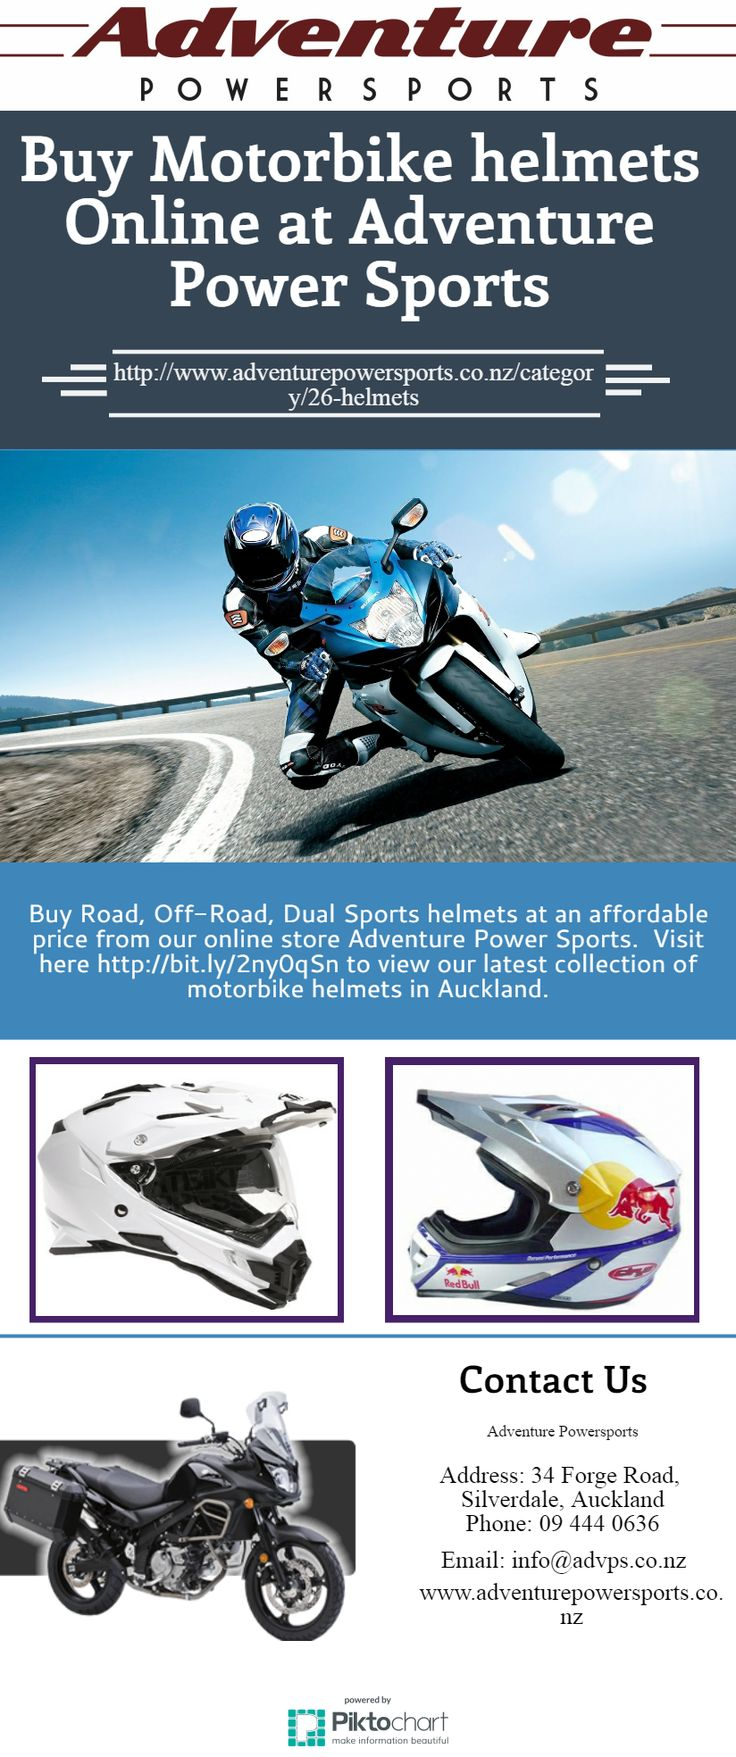 Buy Road, Off-Road, Dual Sports helmets at an affordable price from our online store Adventure Power Sports. Visit at https://goo.gl/ic3mxb